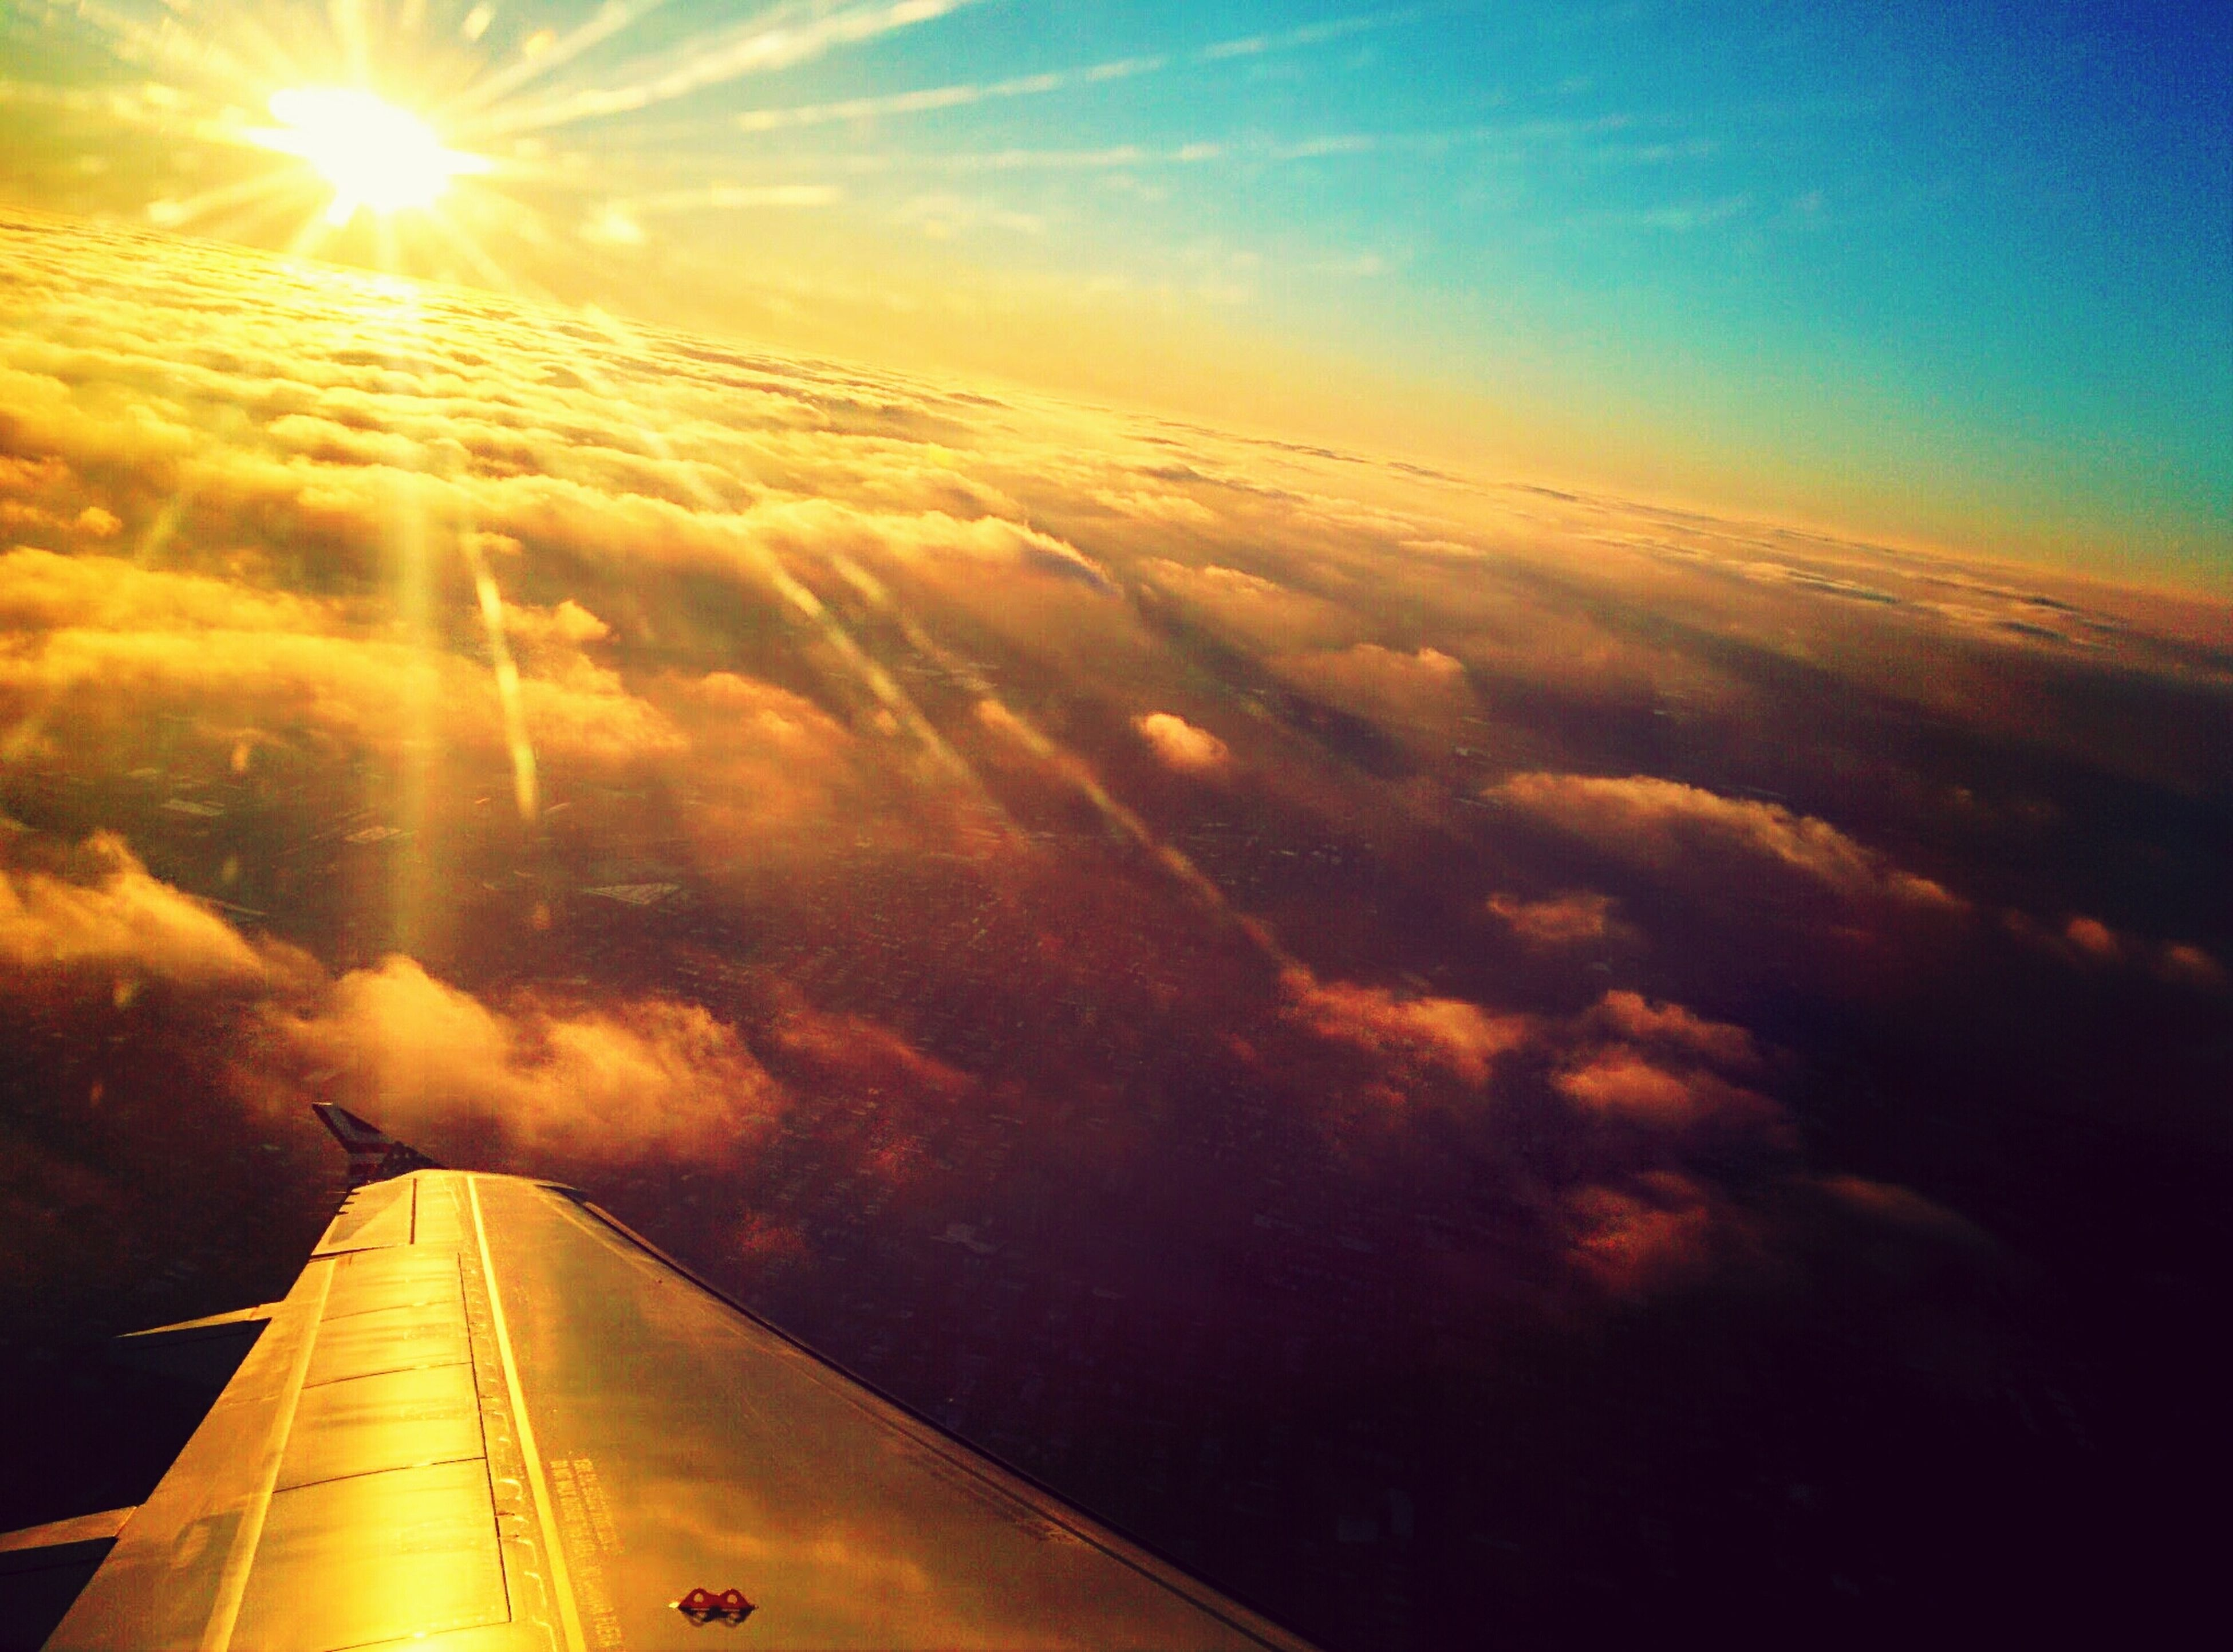 transportation, airplane, mode of transport, aircraft wing, sky, air vehicle, flying, aerial view, sunset, part of, cloud - sky, on the move, sun, cropped, travel, scenics, beauty in nature, sunlight, journey, nature